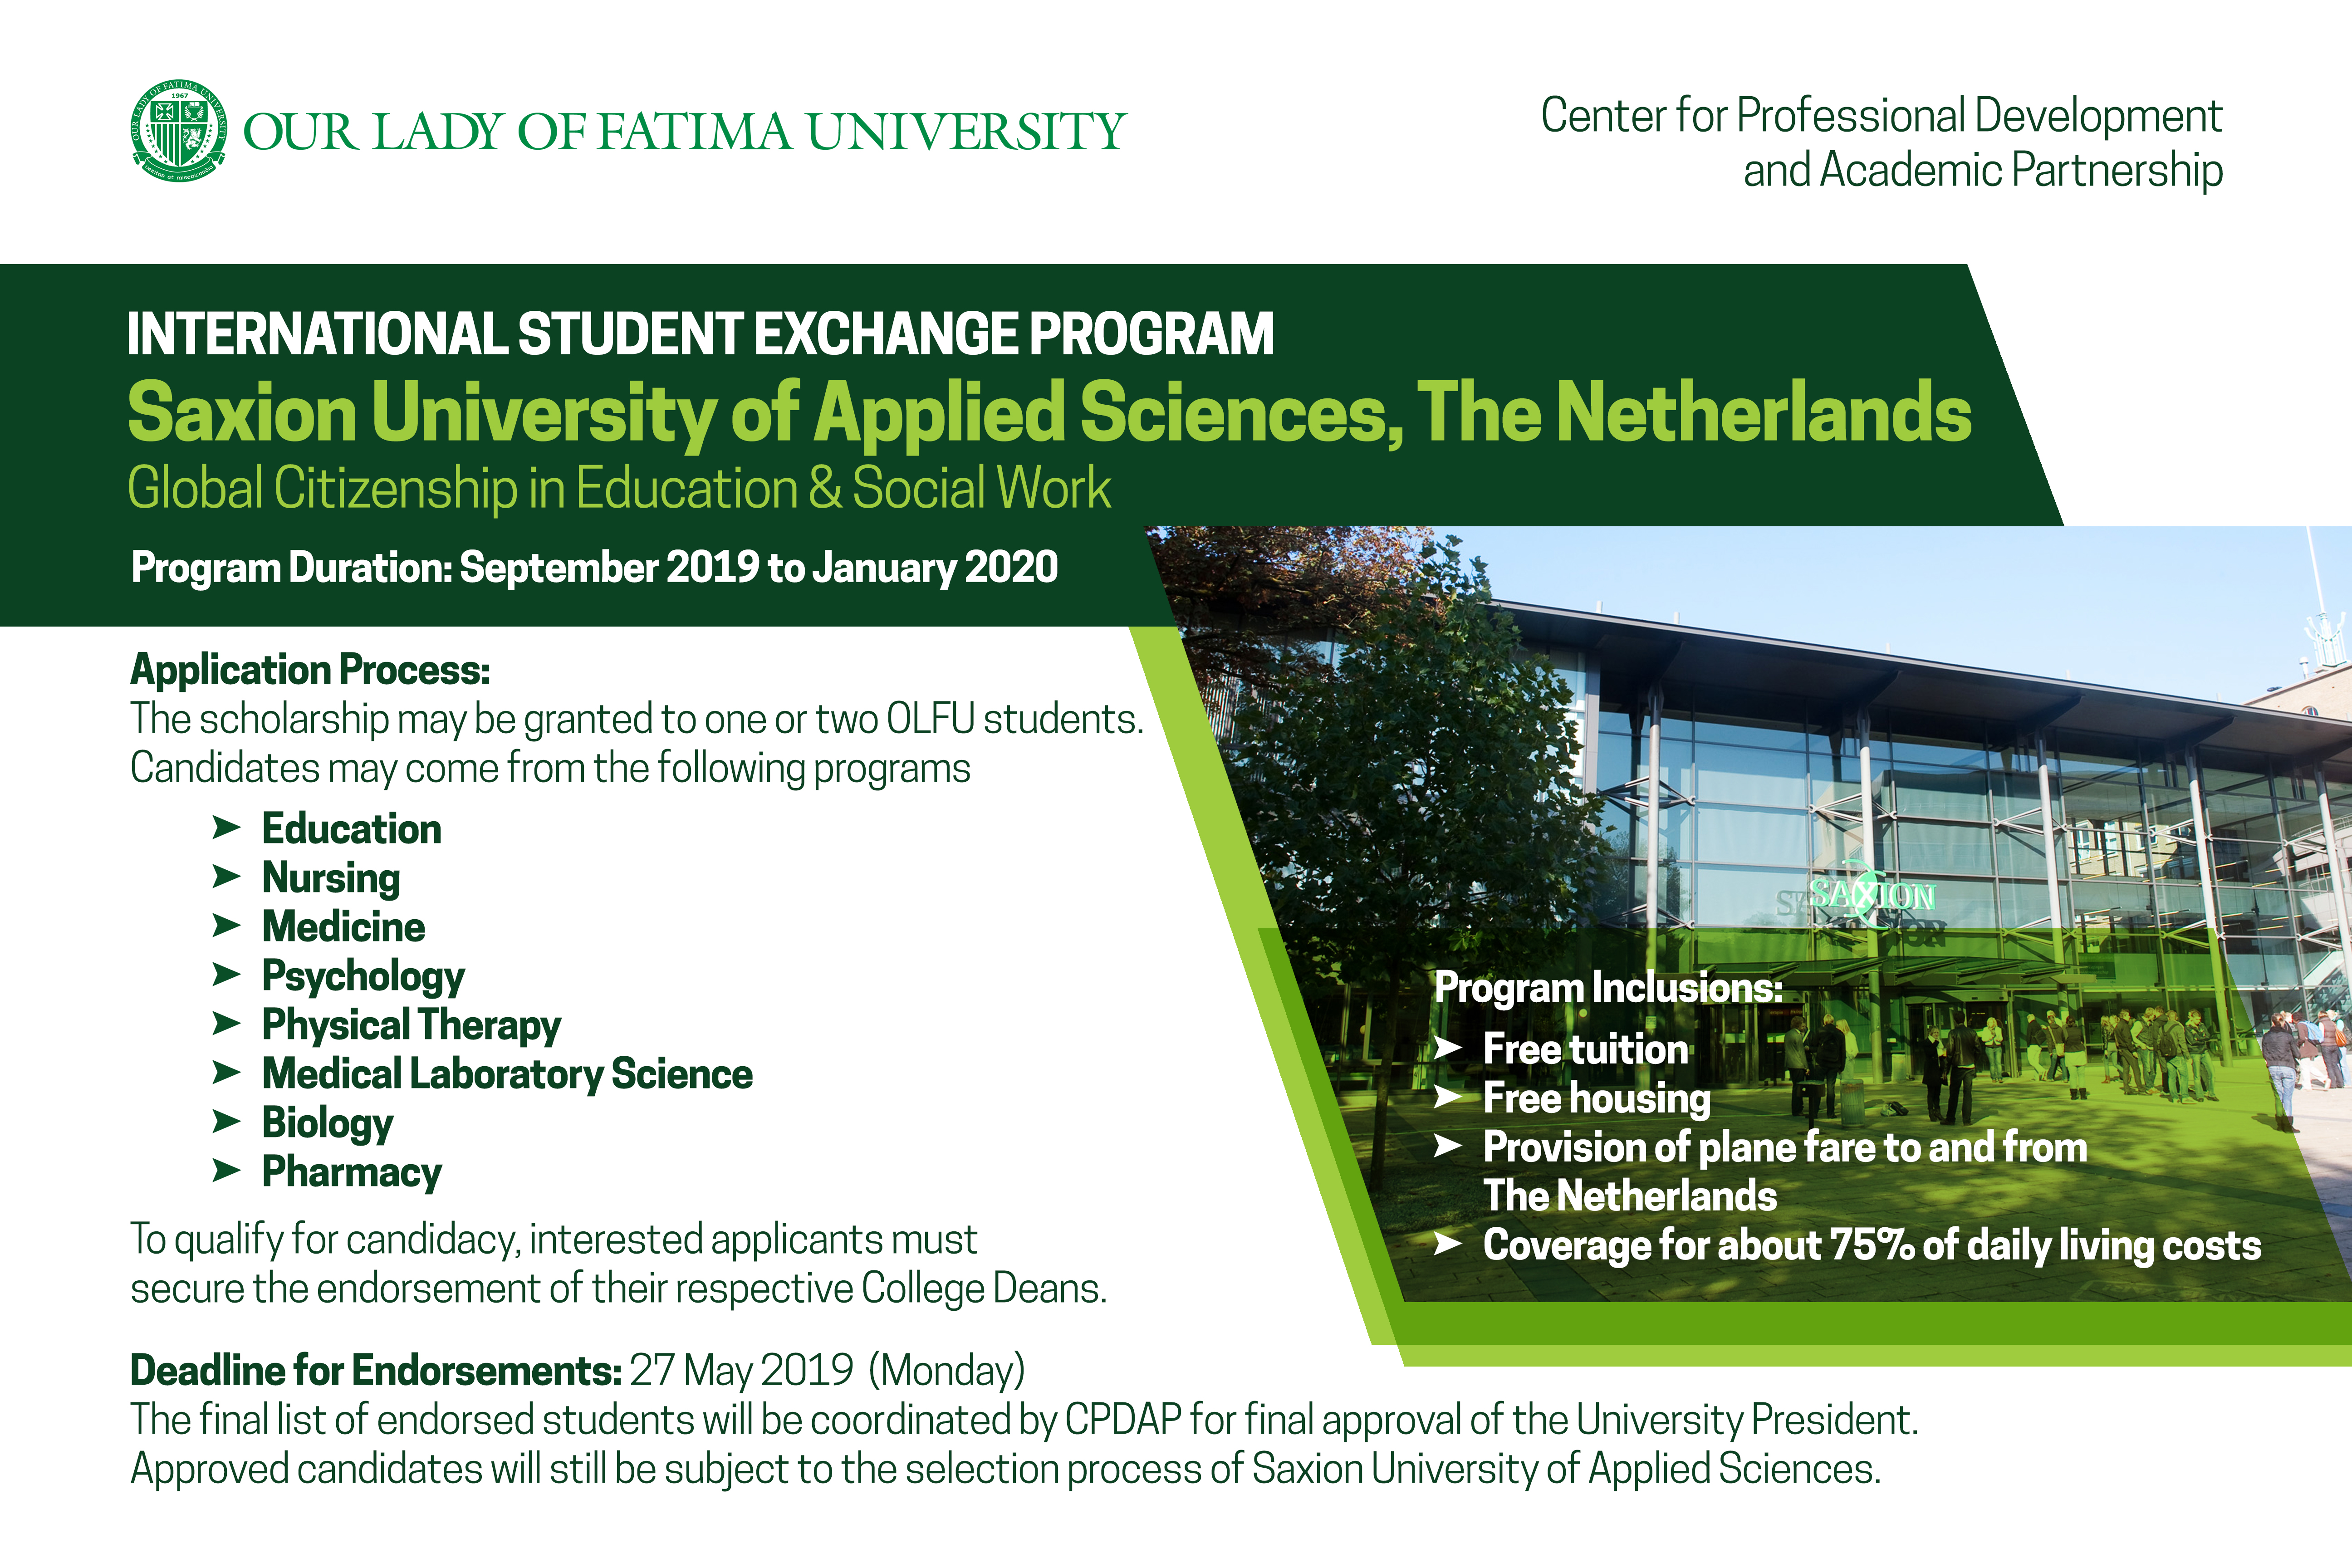 The Netherlands' Saxion University of Applied Sciences offers Student Exchange Program Scholarship to OLFU Students